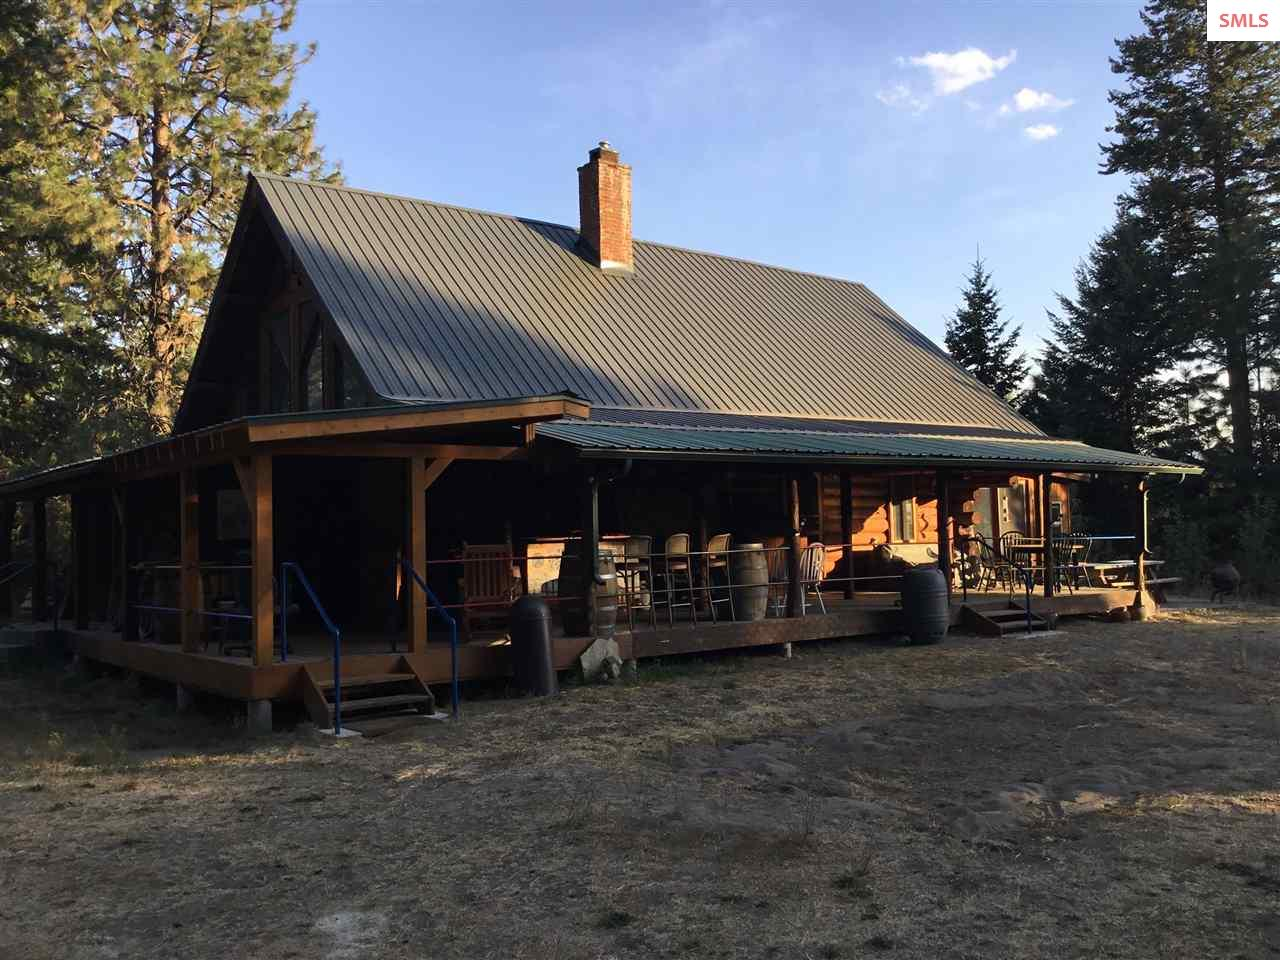 Single Family Home for Sale at 68 SPUR Road 68 SPUR Road Naples, Idaho 83847 United States